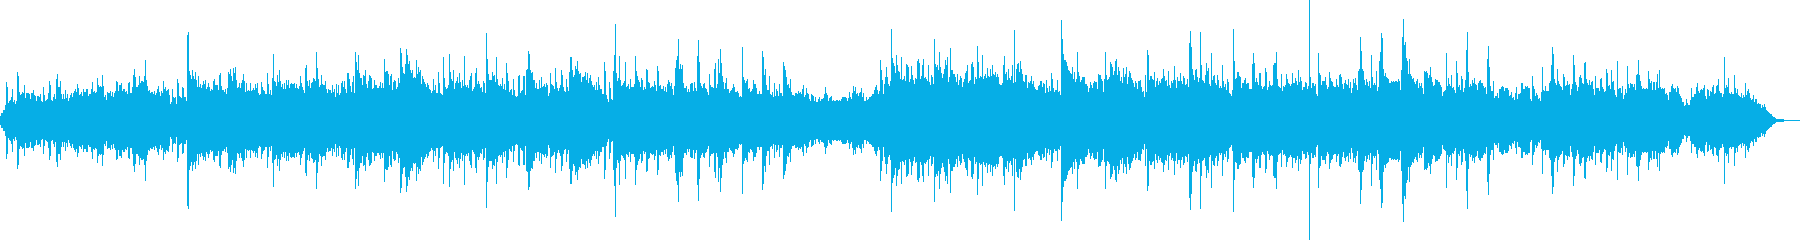 The sound of a wind instrument that feels warm's reproduced waveform